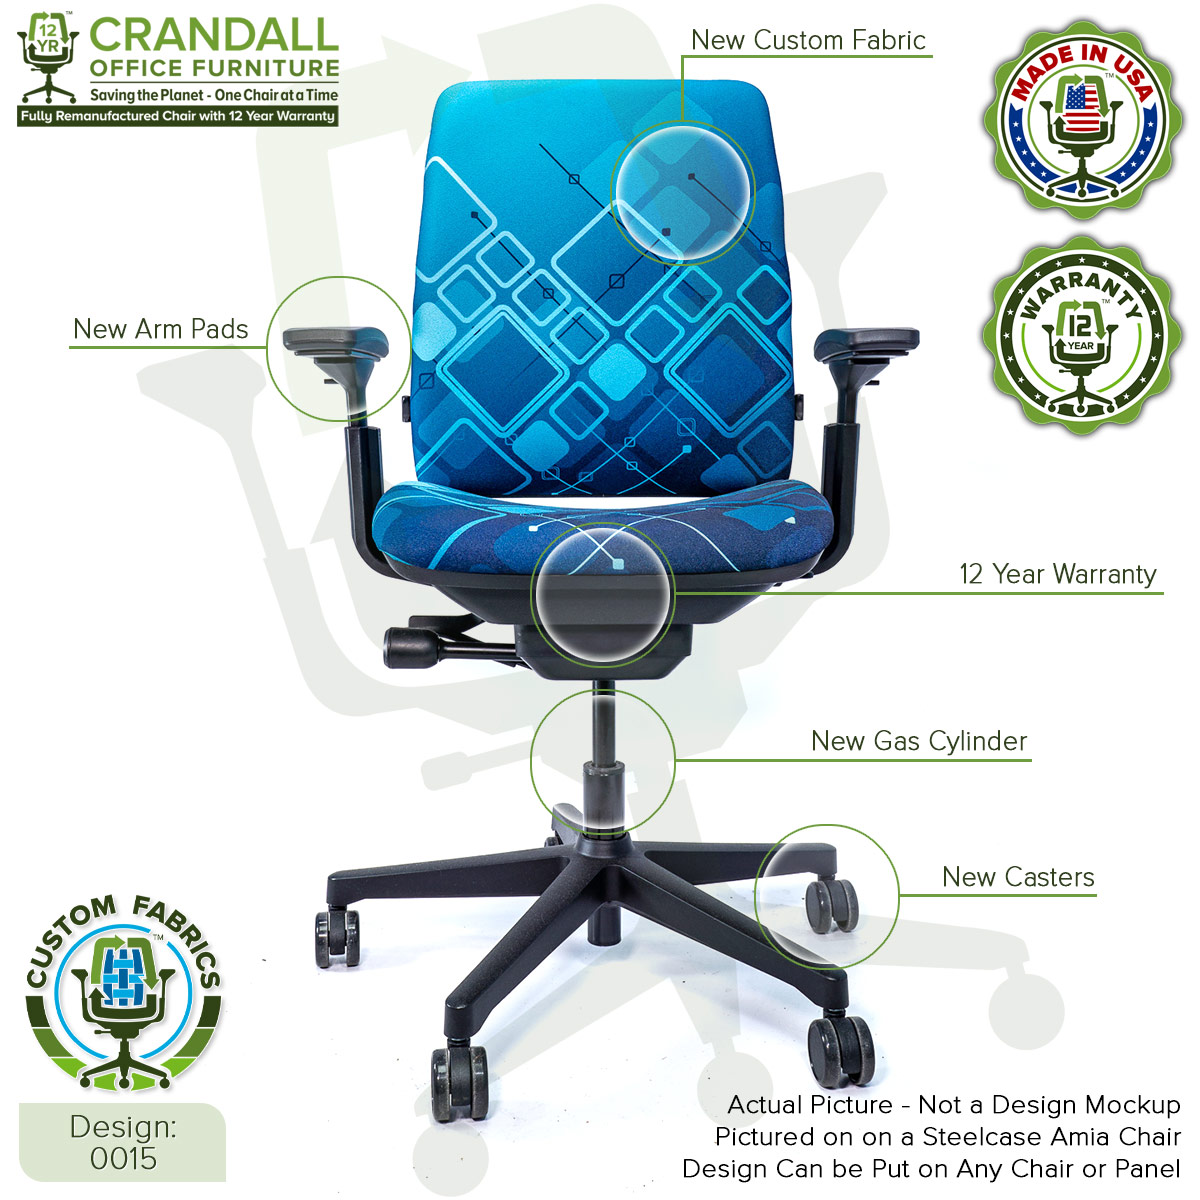 Custom Fabric Remanufactured Steelcase Amia Chair - Design 0015 with Labels